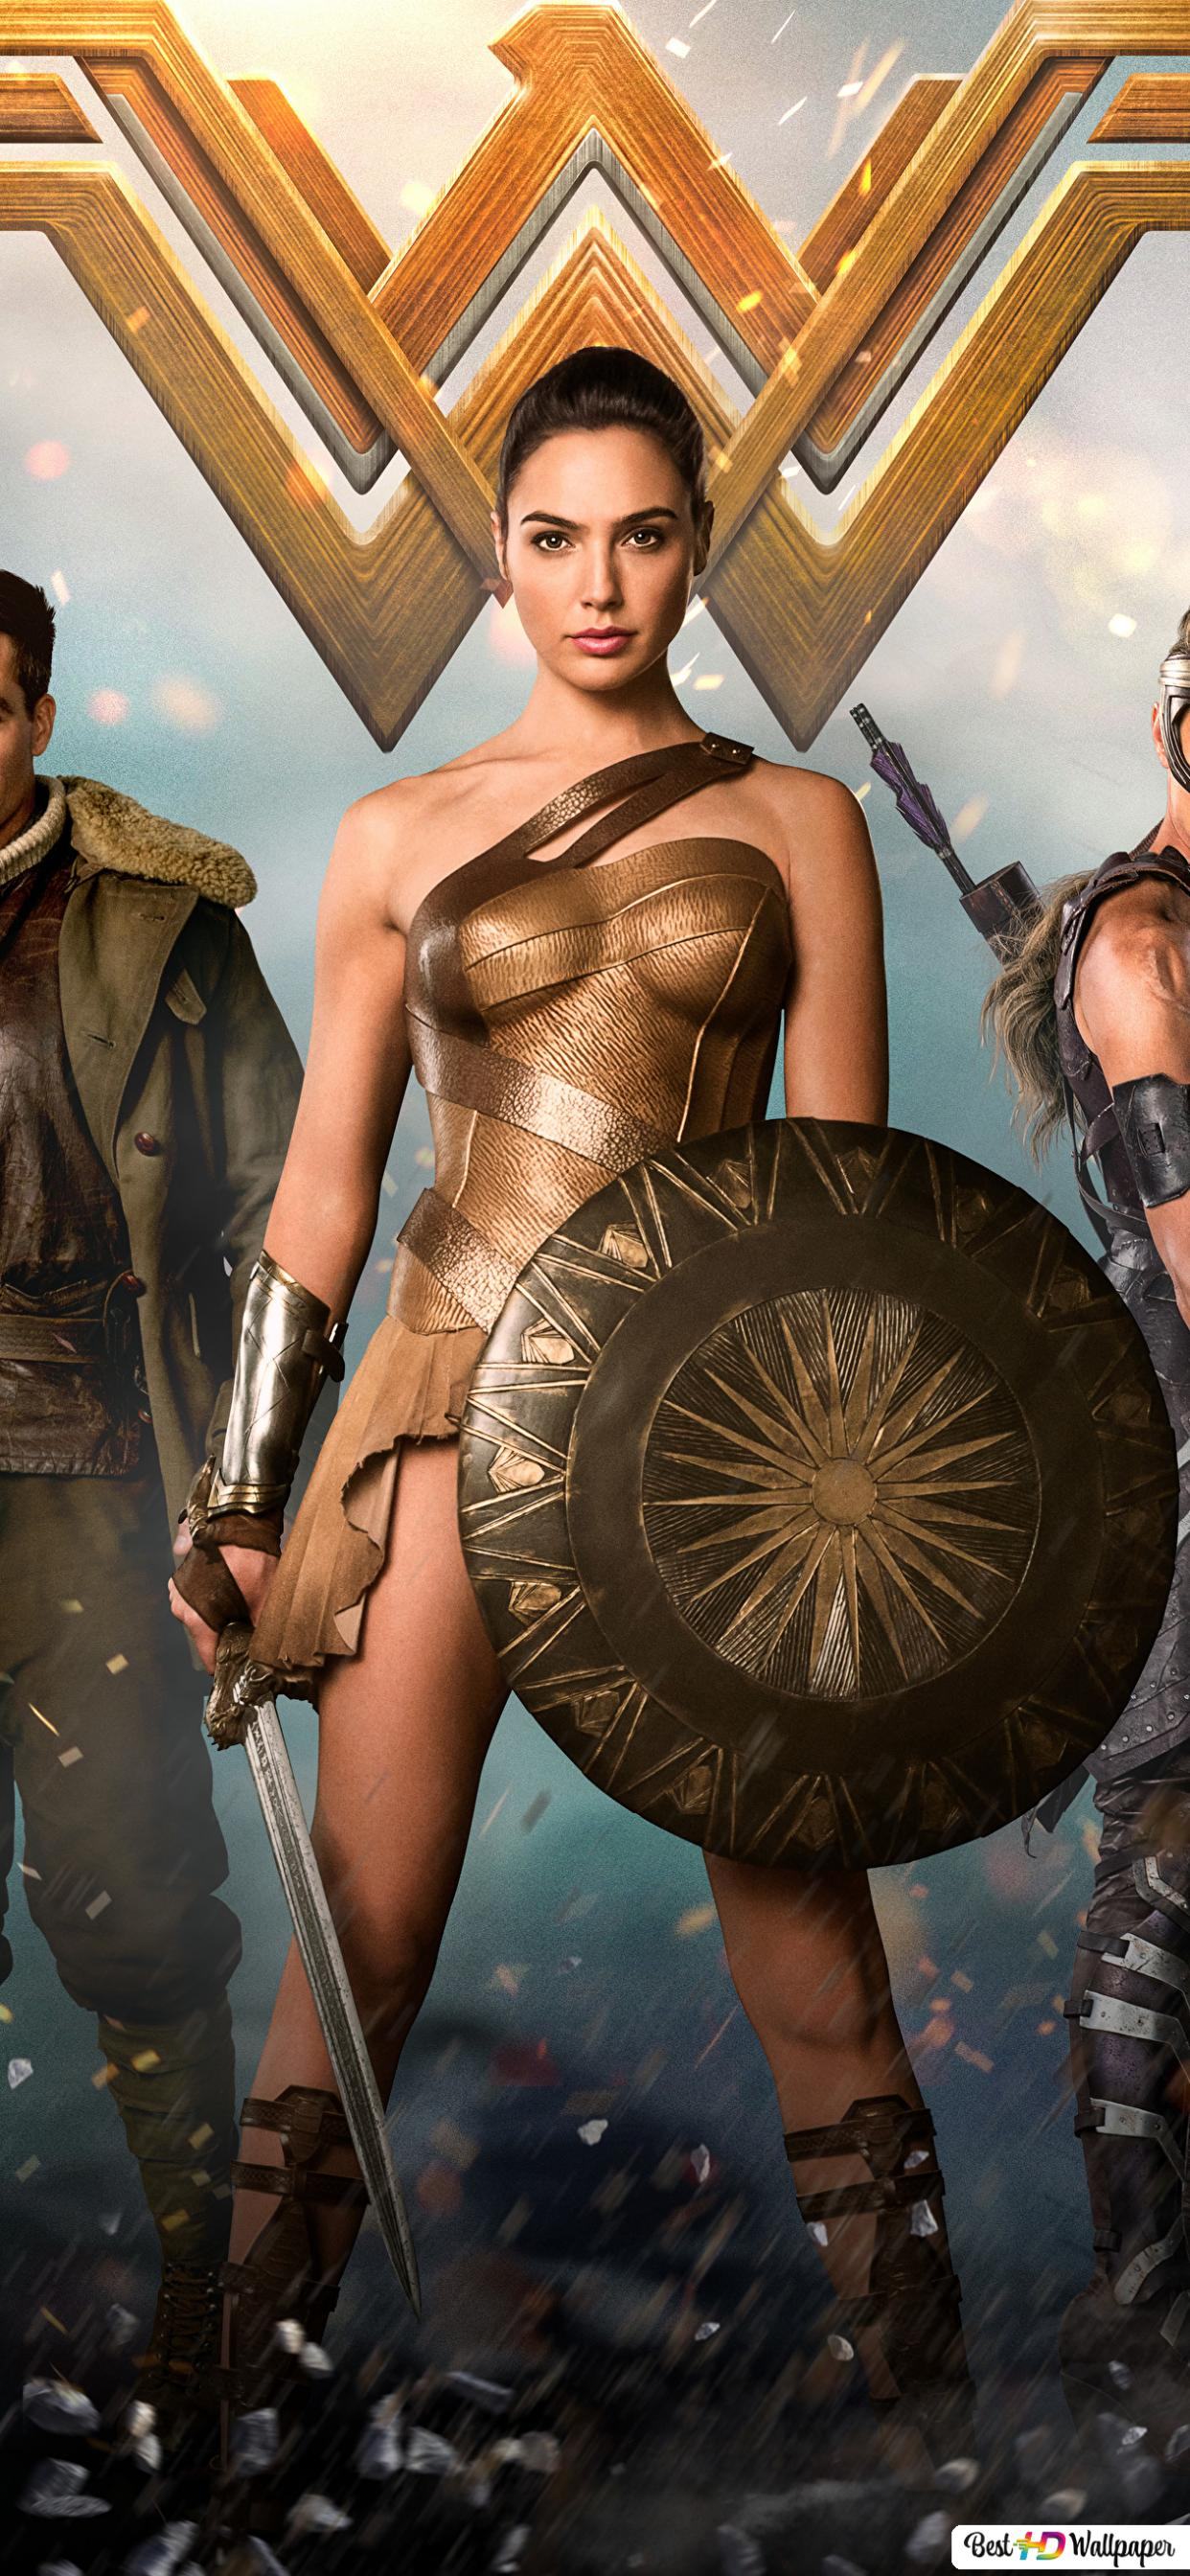 Wonder Woman Movie Gal Gadot With The Shield Hd Wallpaper Download